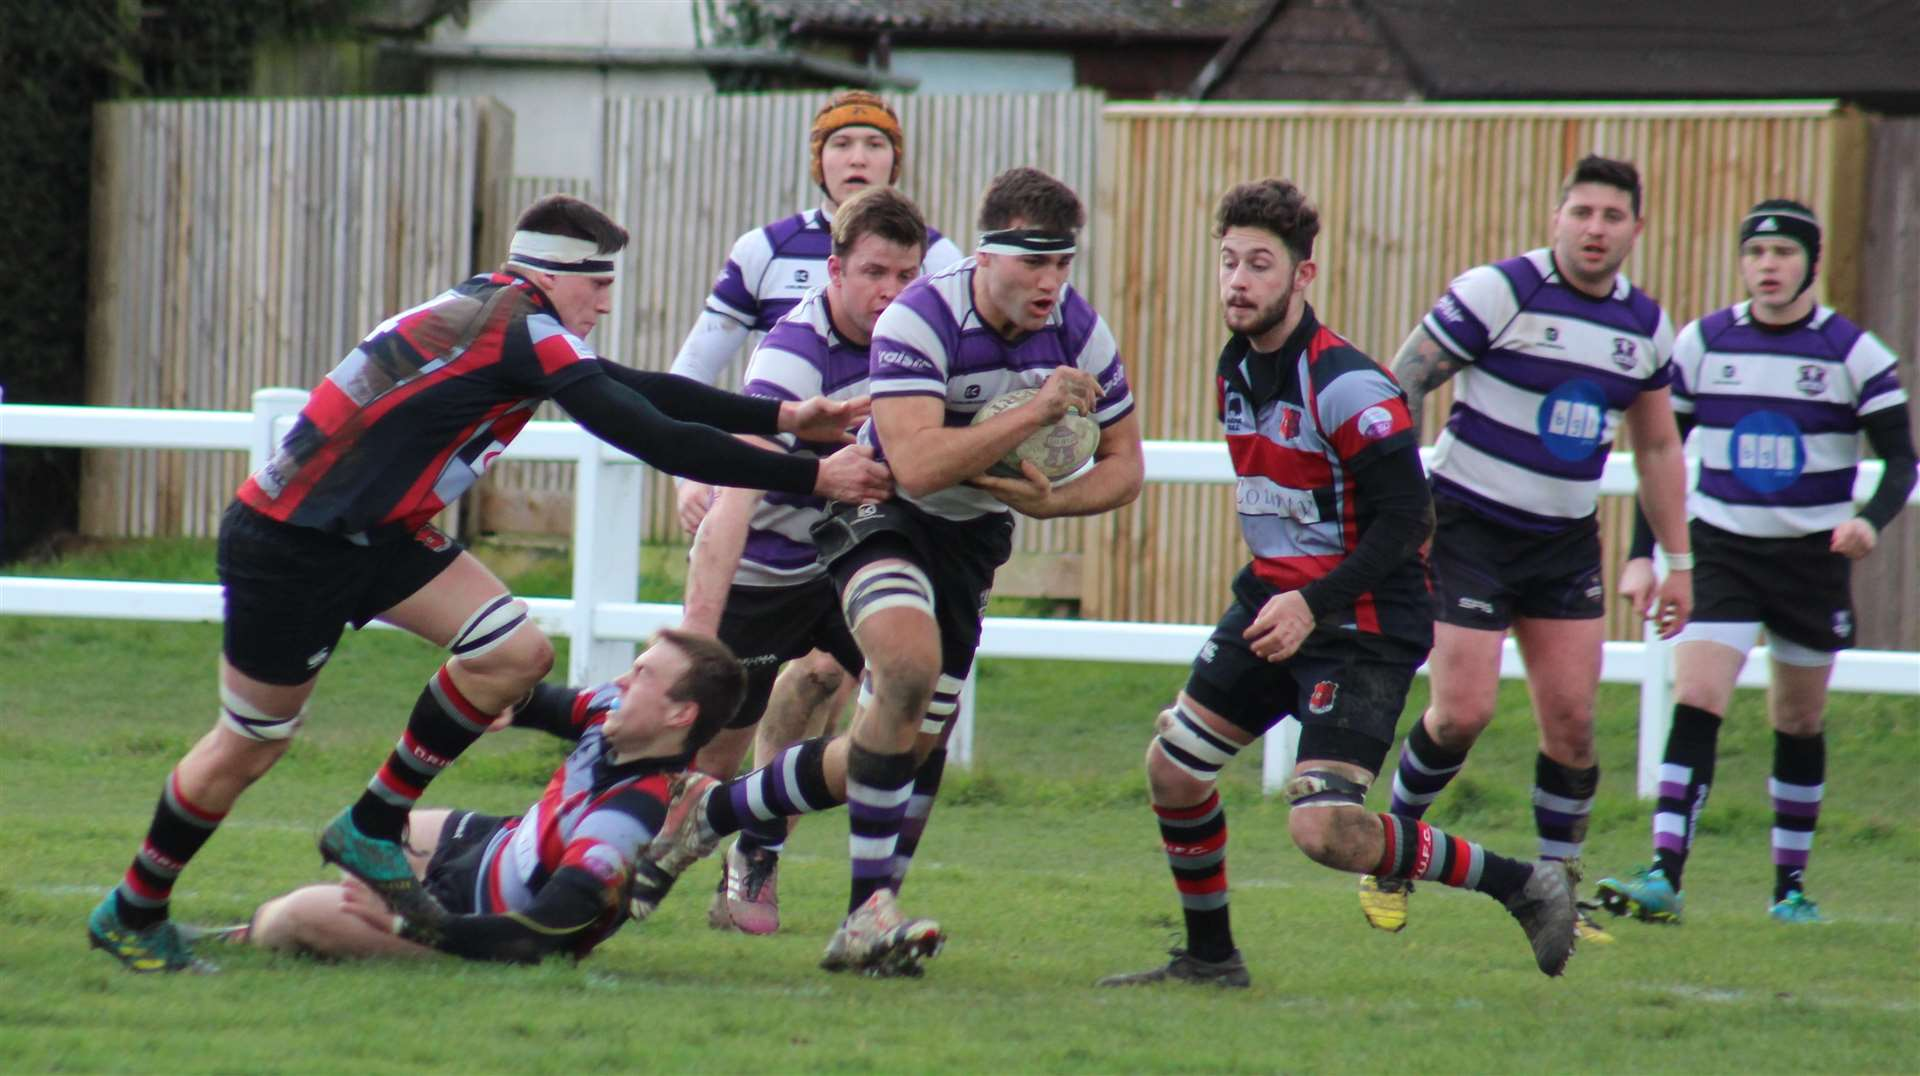 Match action from Stamford's victory over Dunstablians on Saturday. Photo: Darren Dolby (6800343)